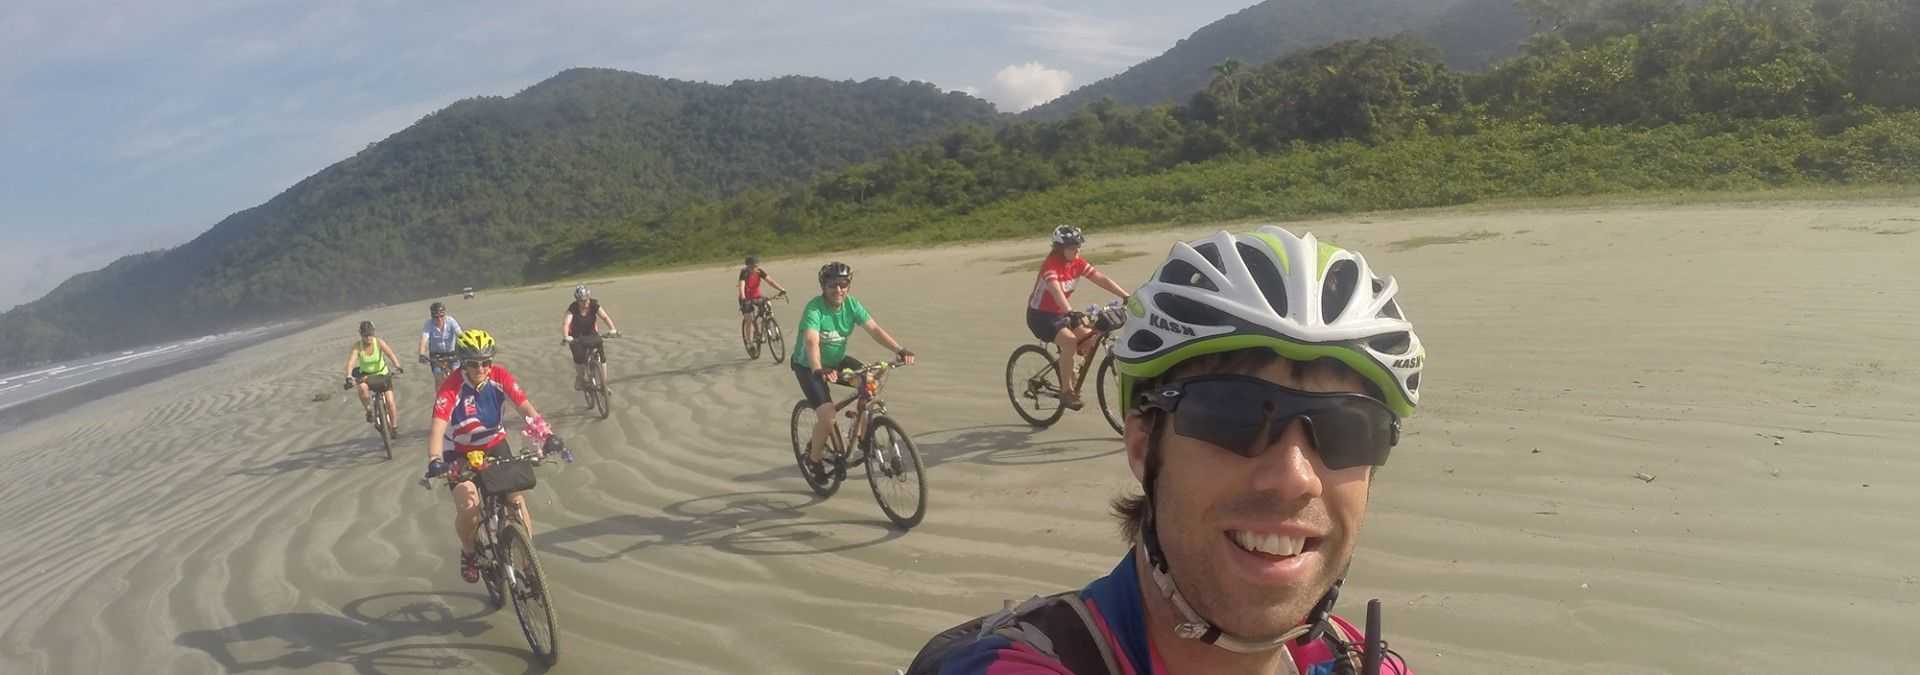 Discover_Adventure_Selfie_Cycle_Brazil.jpg